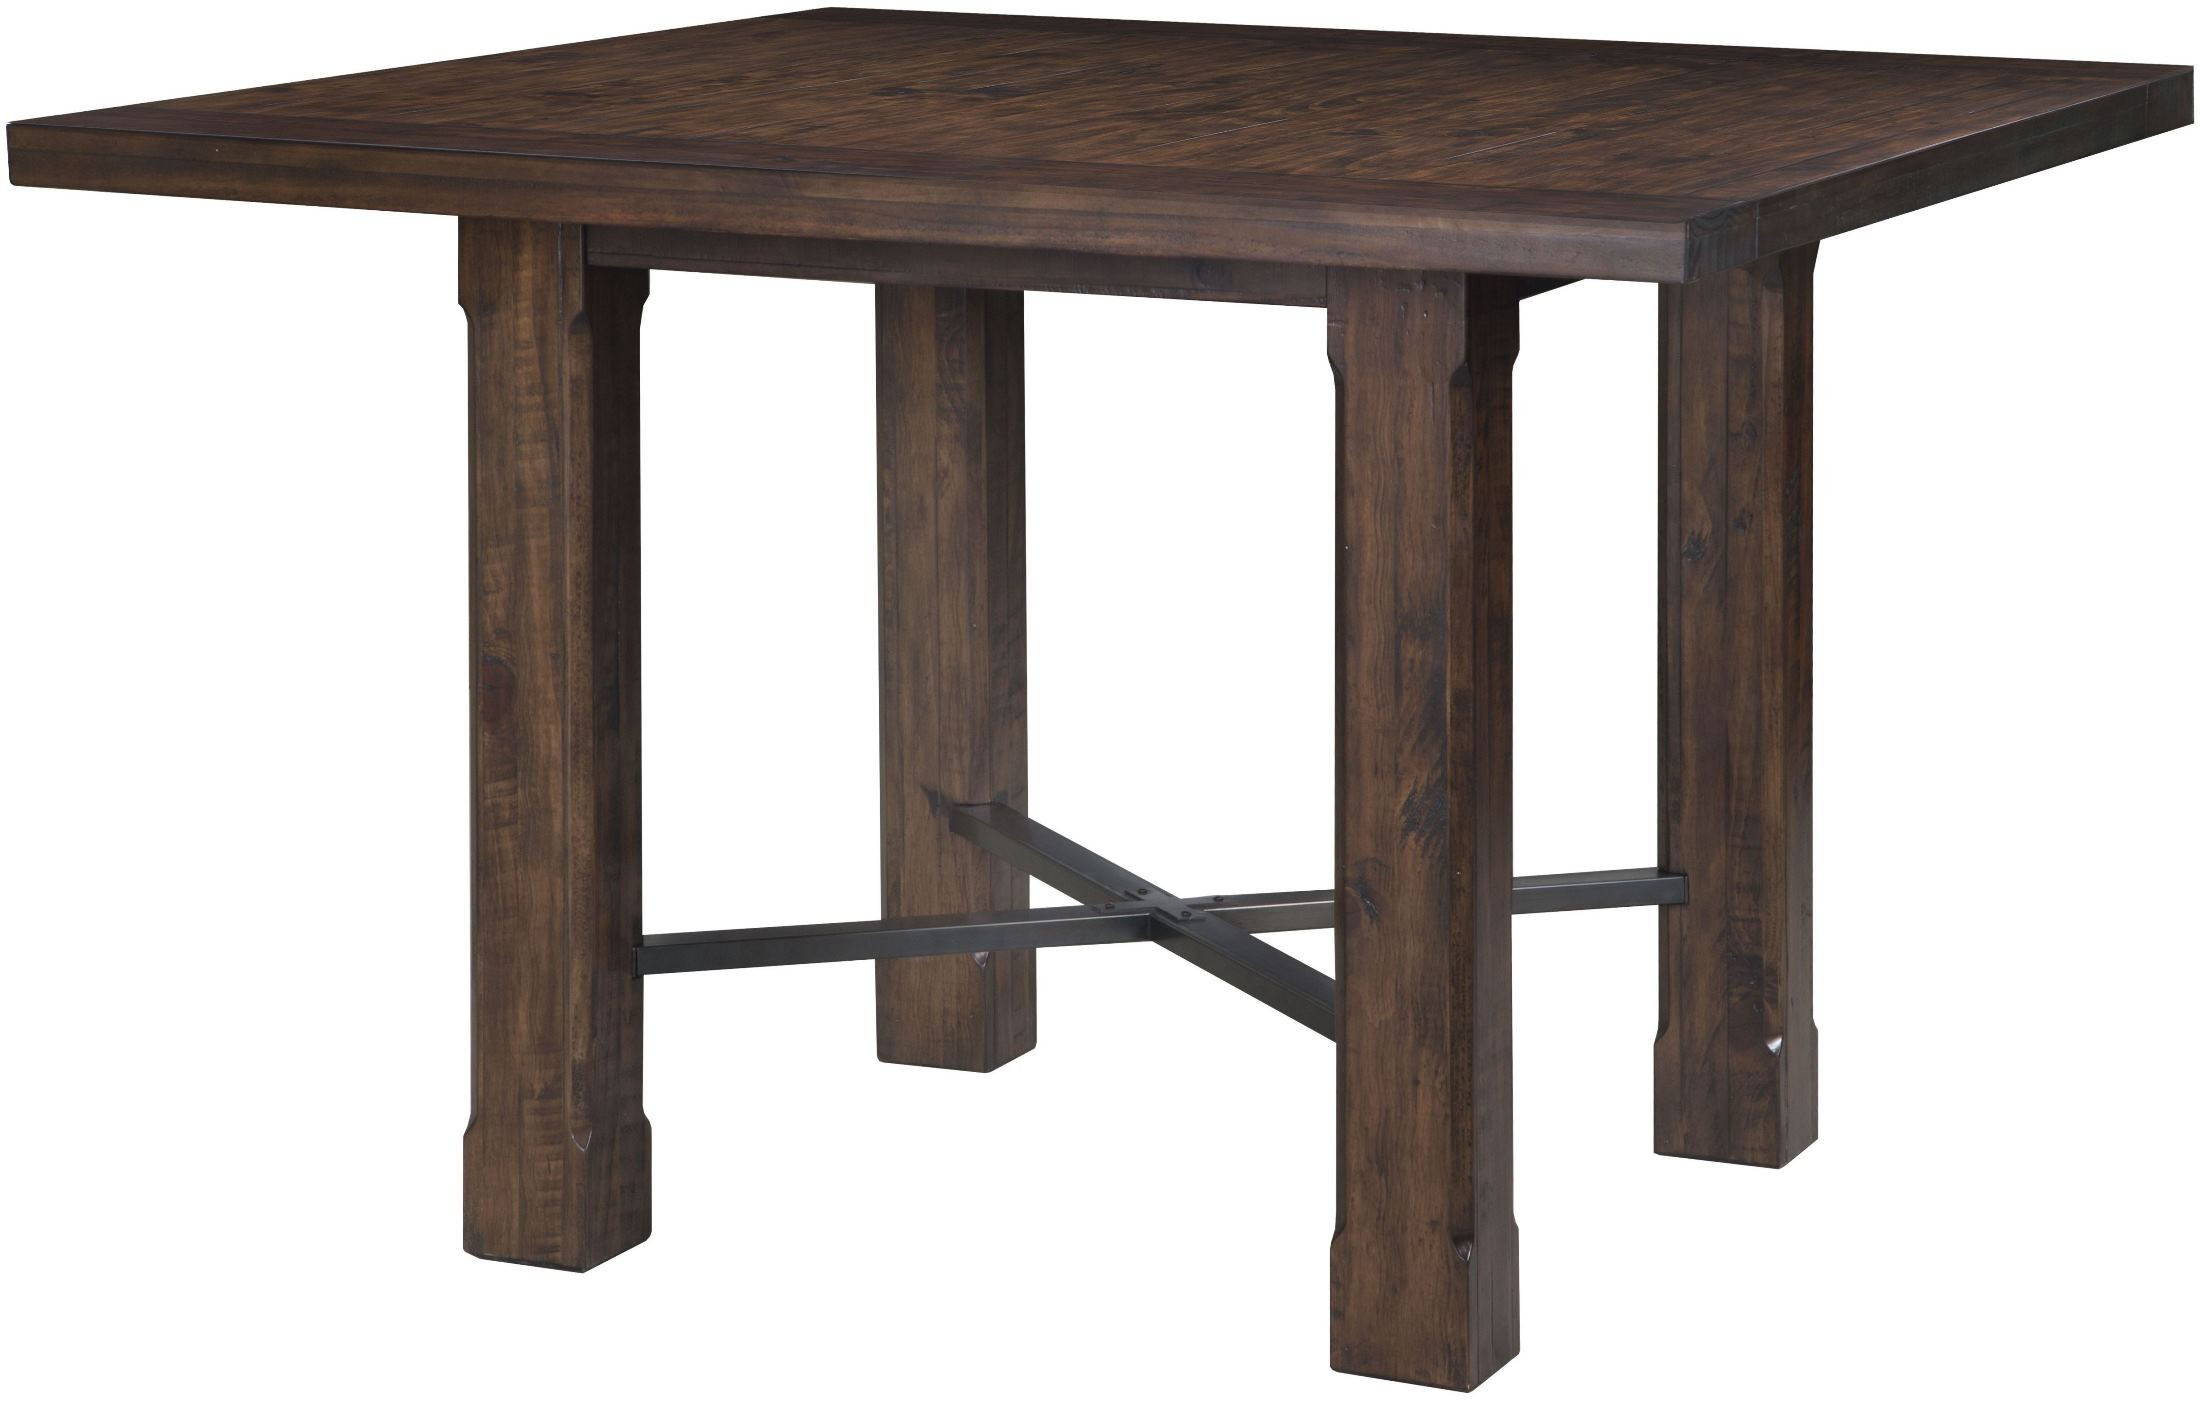 Pine Hill Rustic Pine Square Counter Dining Table MAG D3561 41